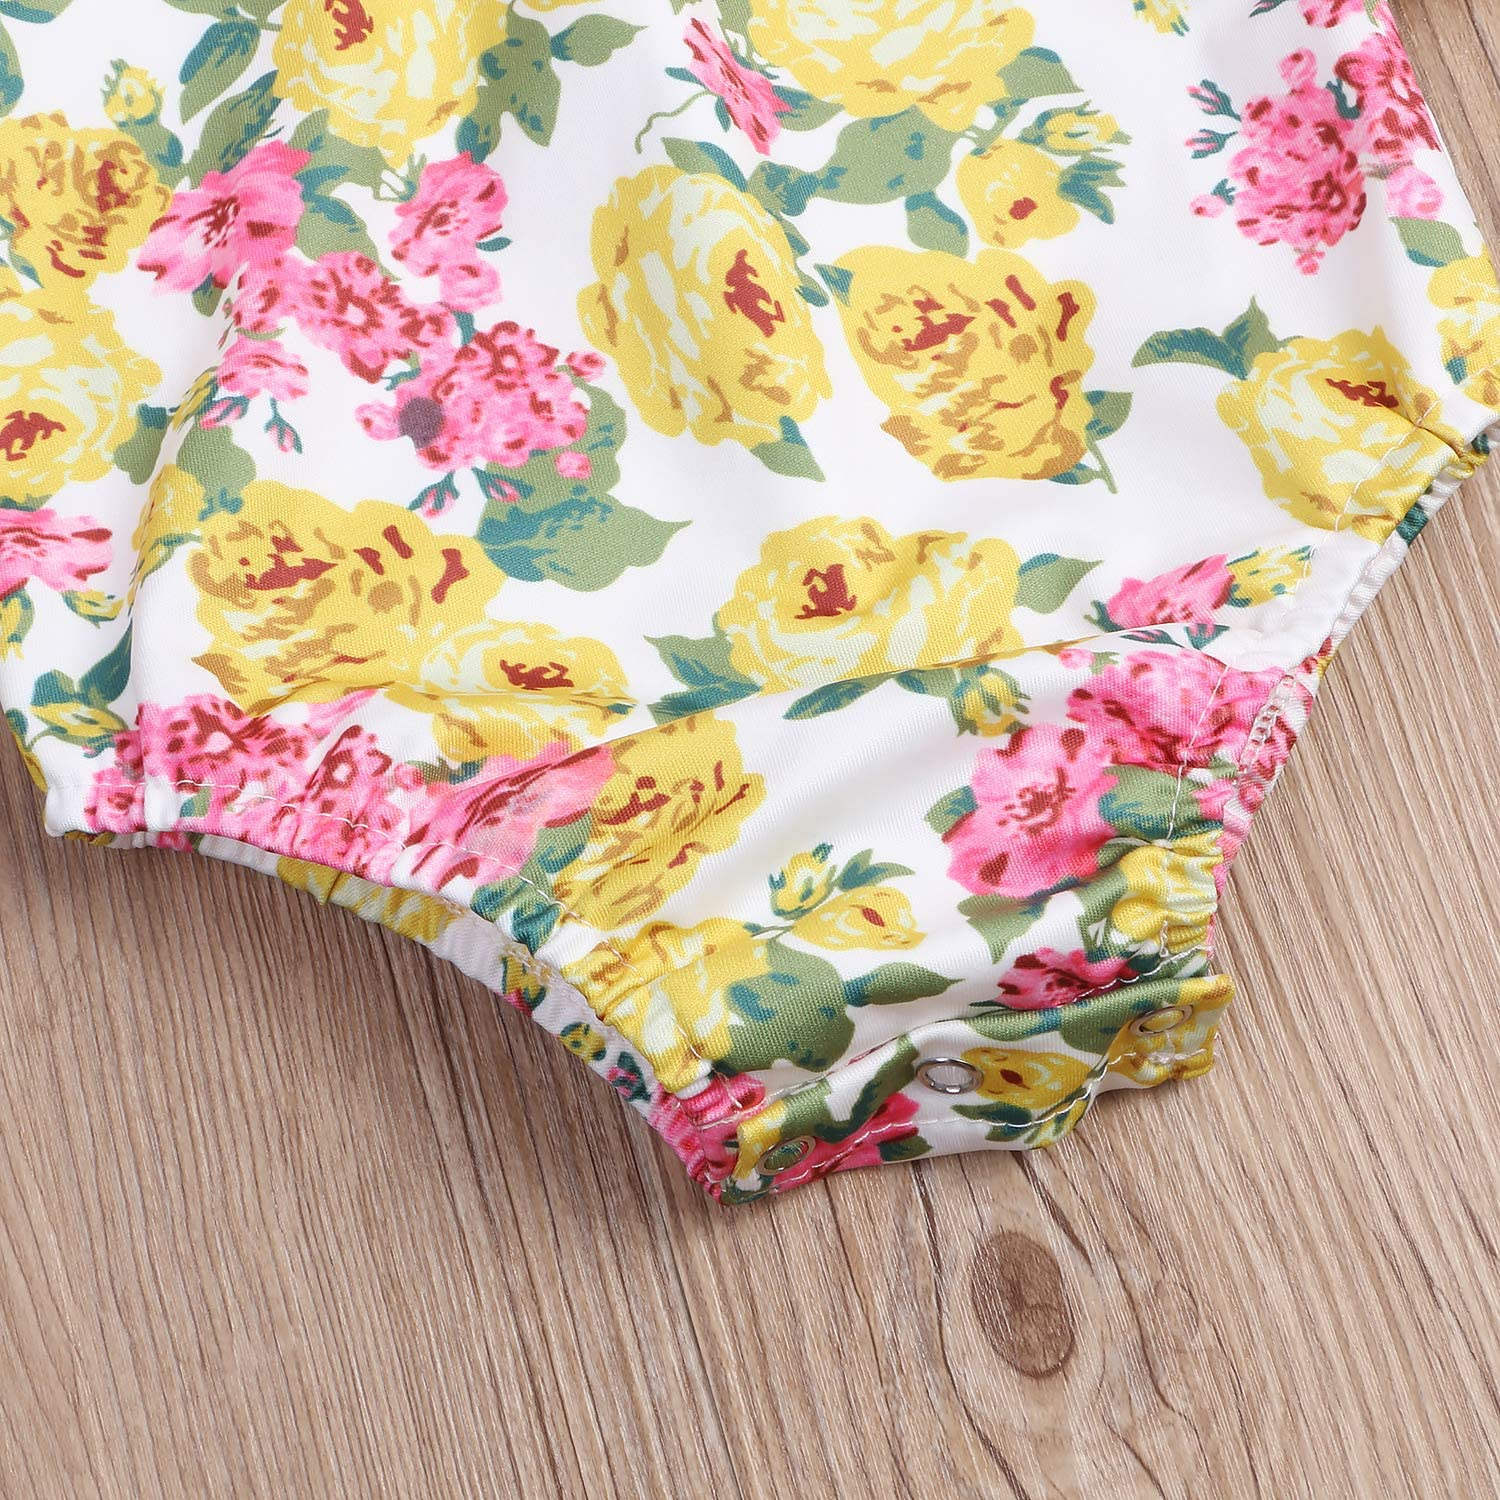 Baby Girls Floral Suspenders Skirts Set Long Sleeve Romper Yellow#2, 6-9 Months Yellow Skirts Outfits